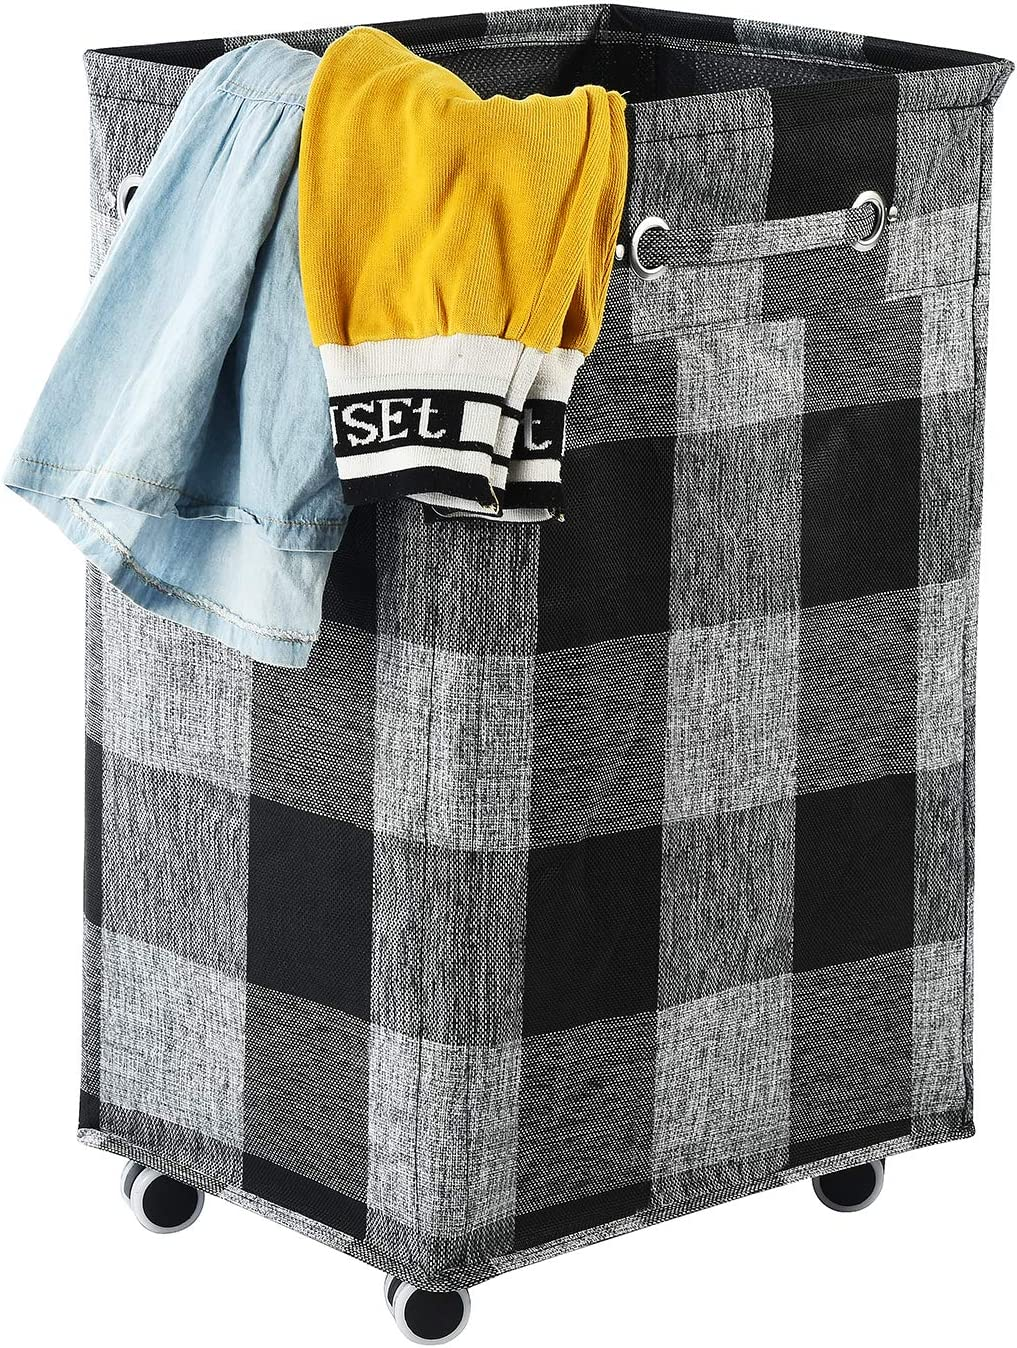 Haundry 85.8L Large Collapsible Laundry Hamper with Wheels, Waterproof Rolling Clothes Hamper Basket Bin for Dirty Clothes Storage(Black)